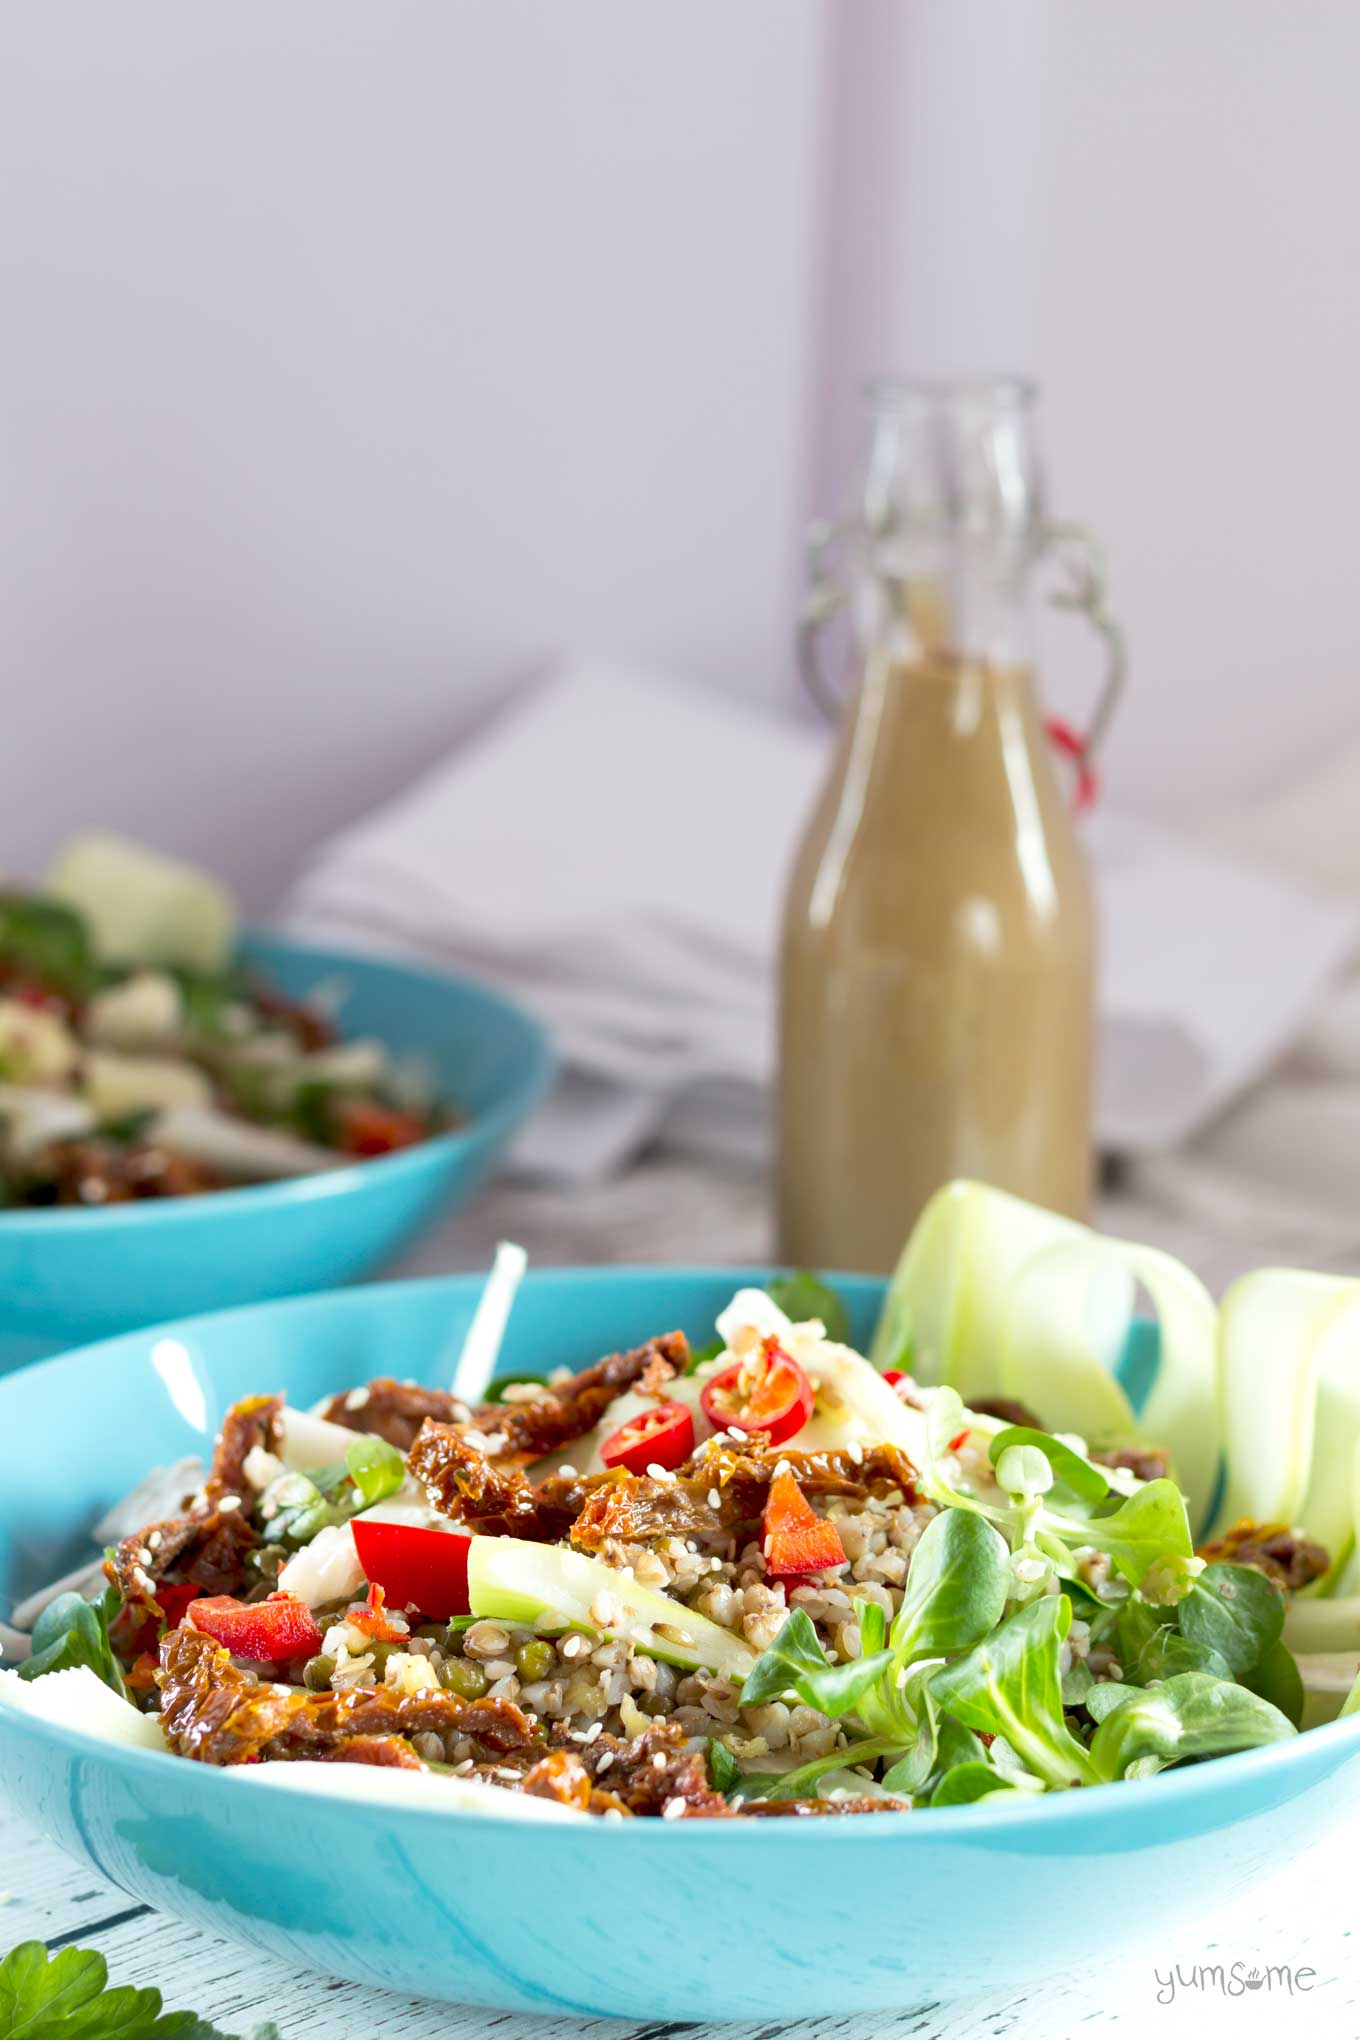 two blue bowls of spicy buckwheat and mungbean salad on a table with a bottle of tahini dressing | yumsome.com